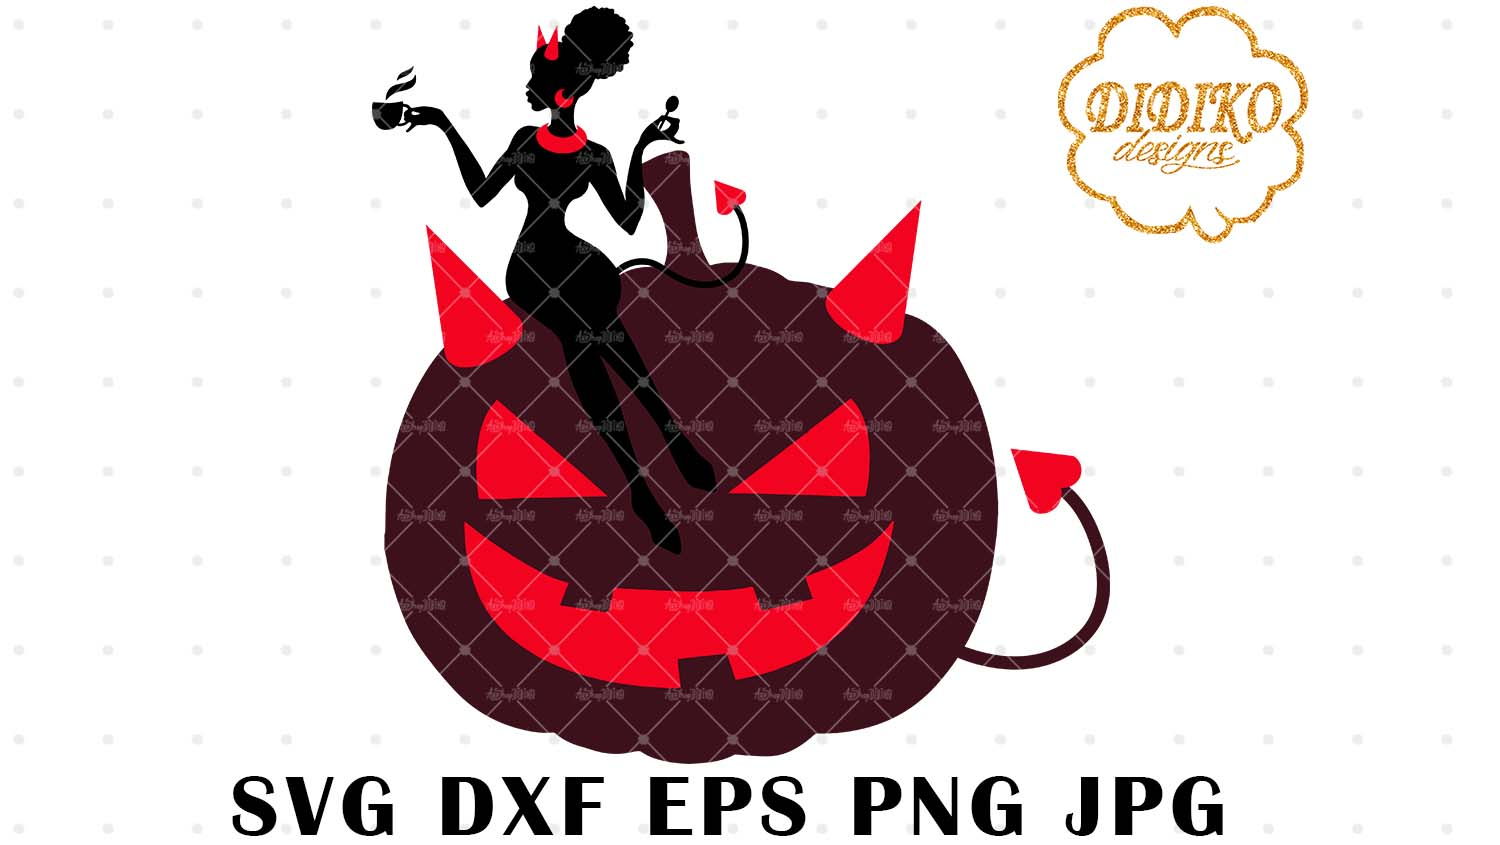 DIDIKO designs African American Boss Lady SVG Halloween SVG